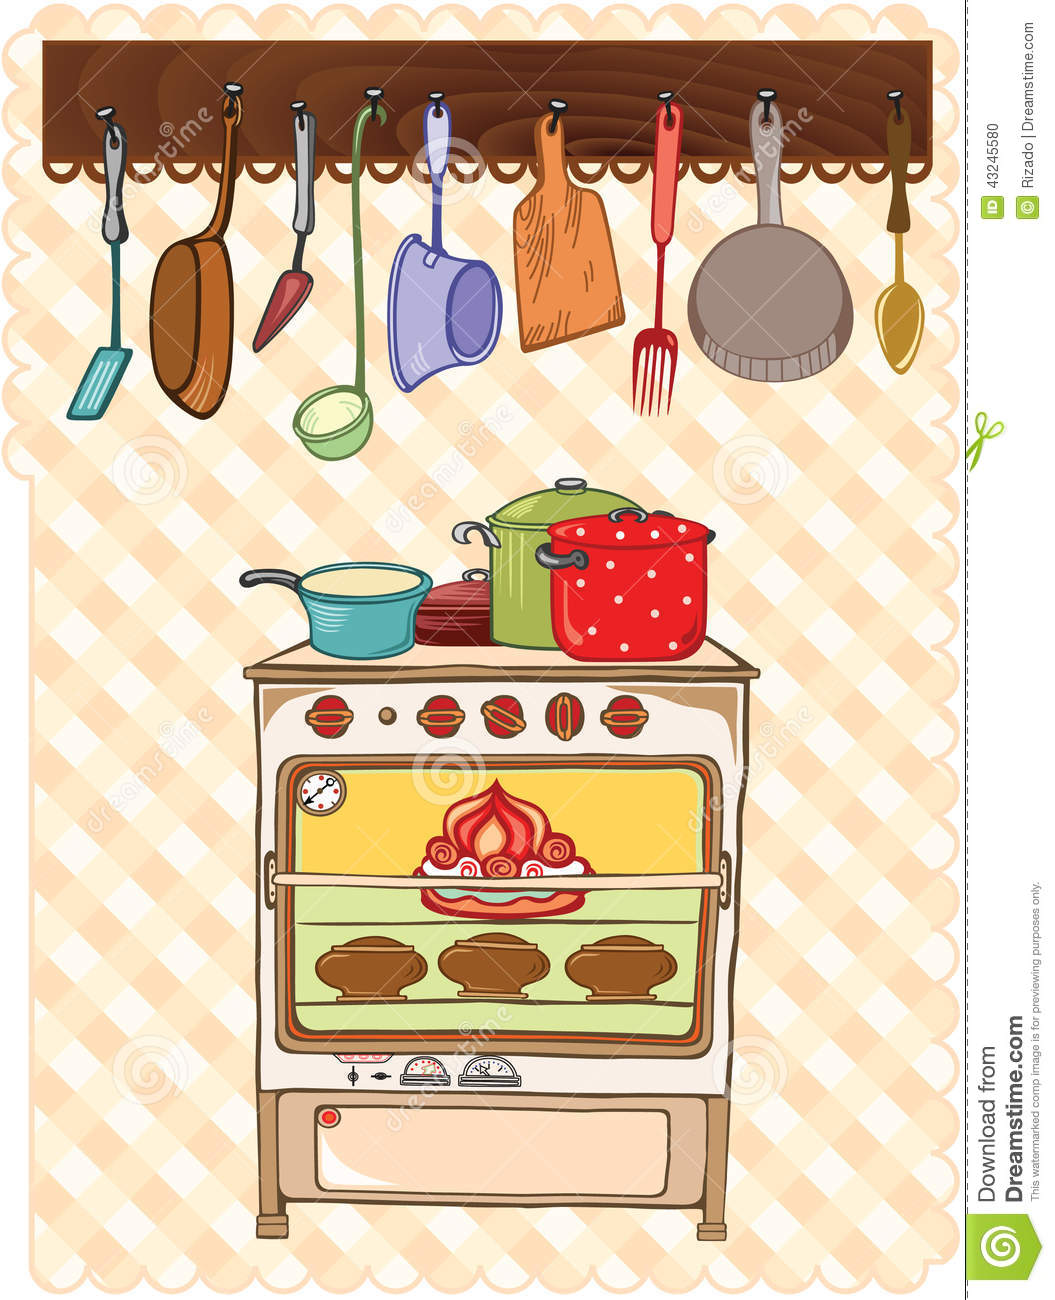 Image Result For Kitchen Utensils Drawing